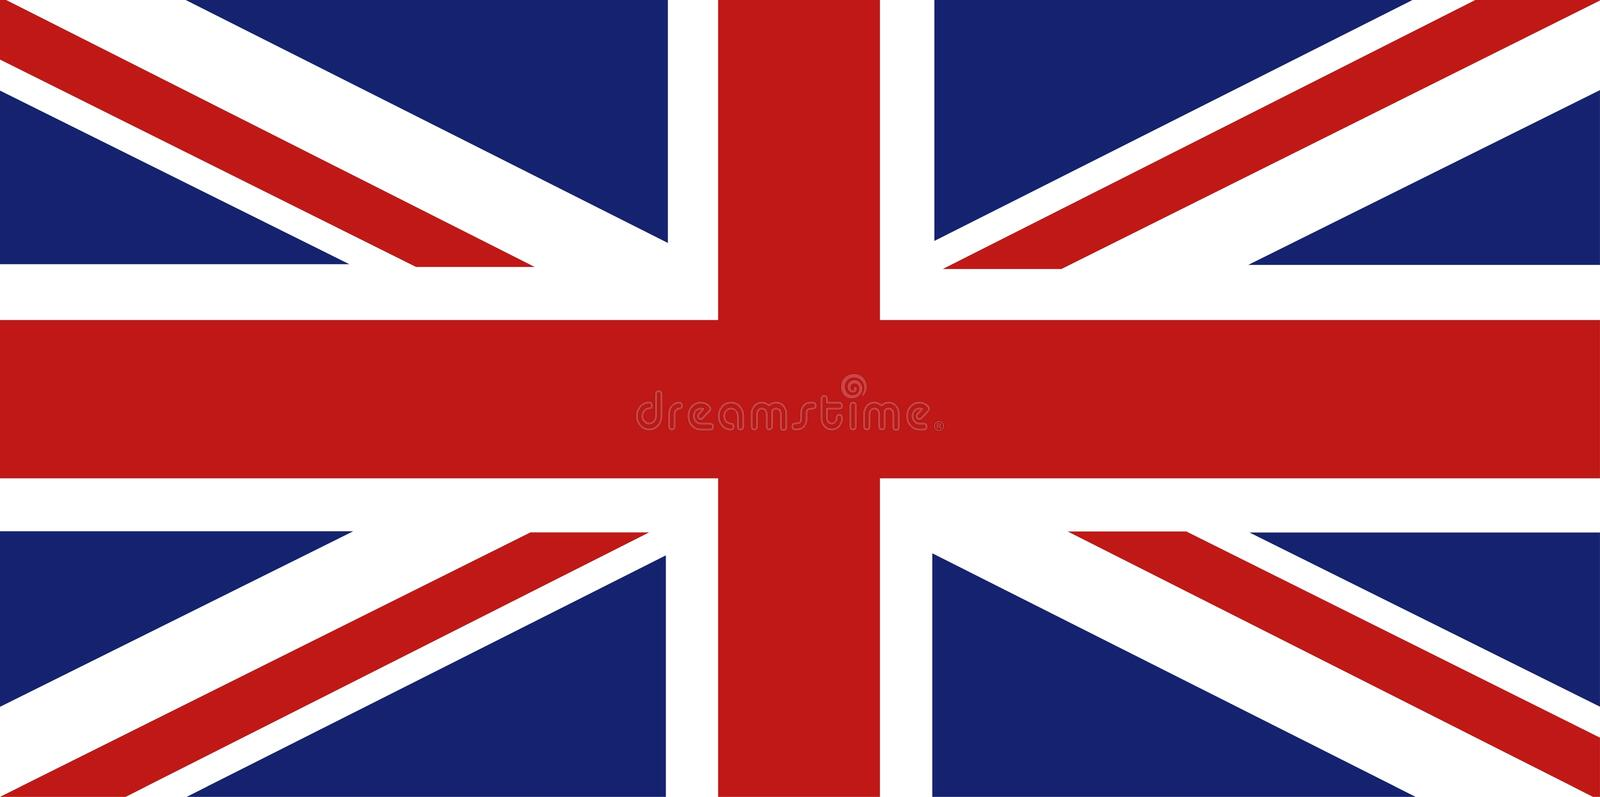 Union Jack vector illustratie